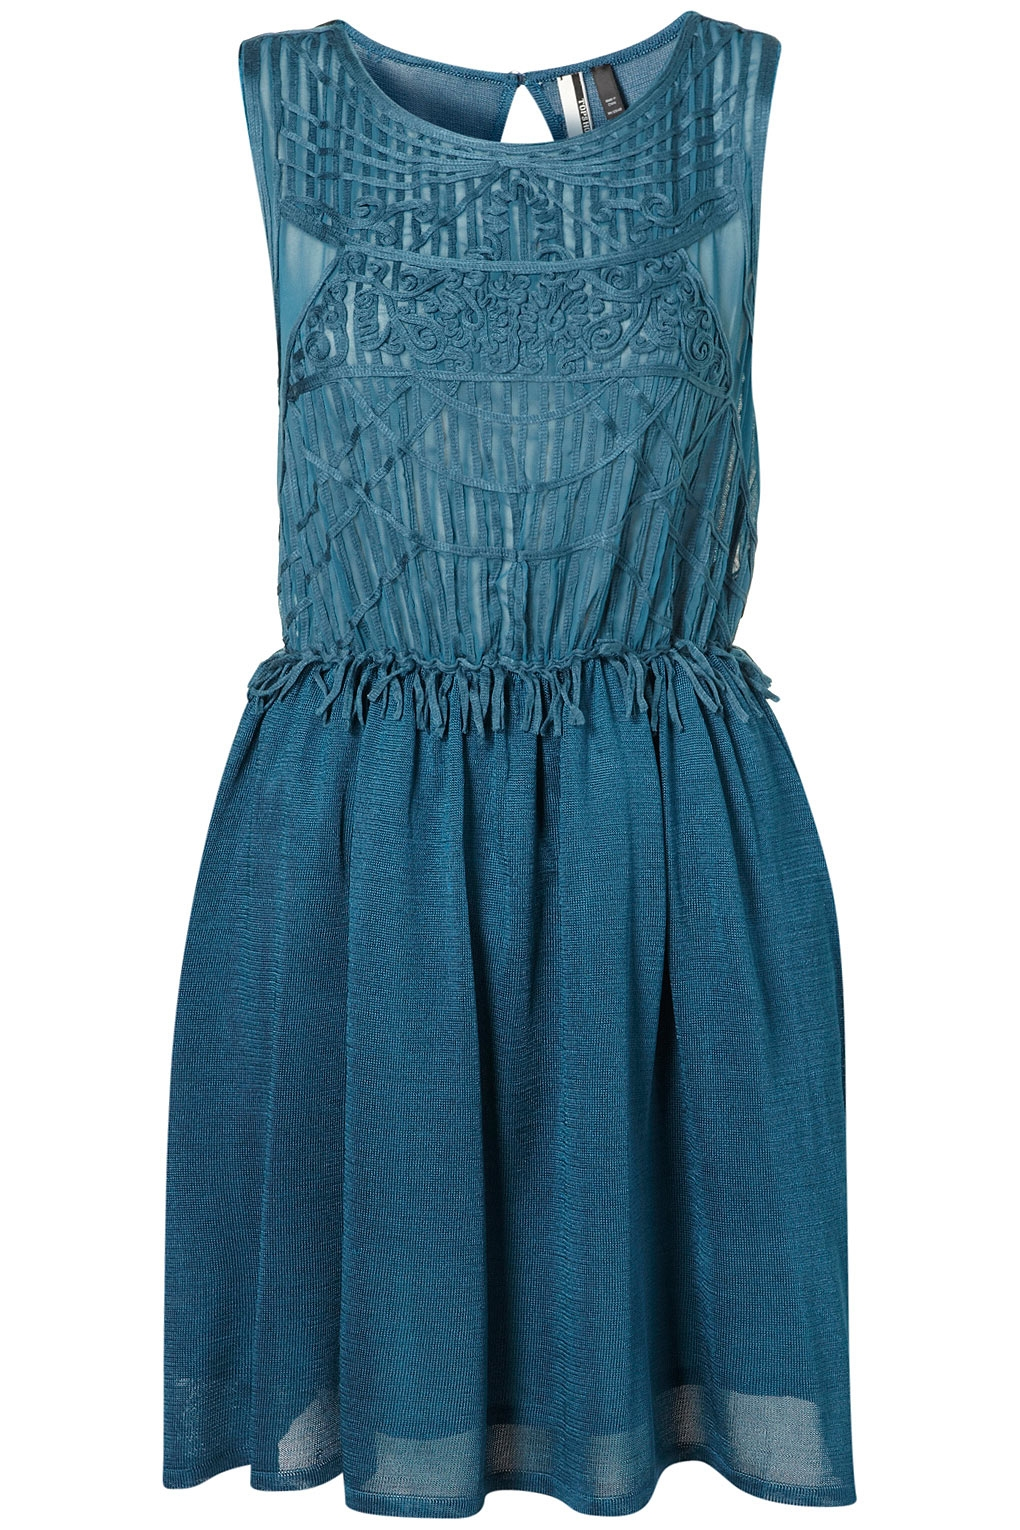 Macrame dresses review  Shopping Guide We Are Number One